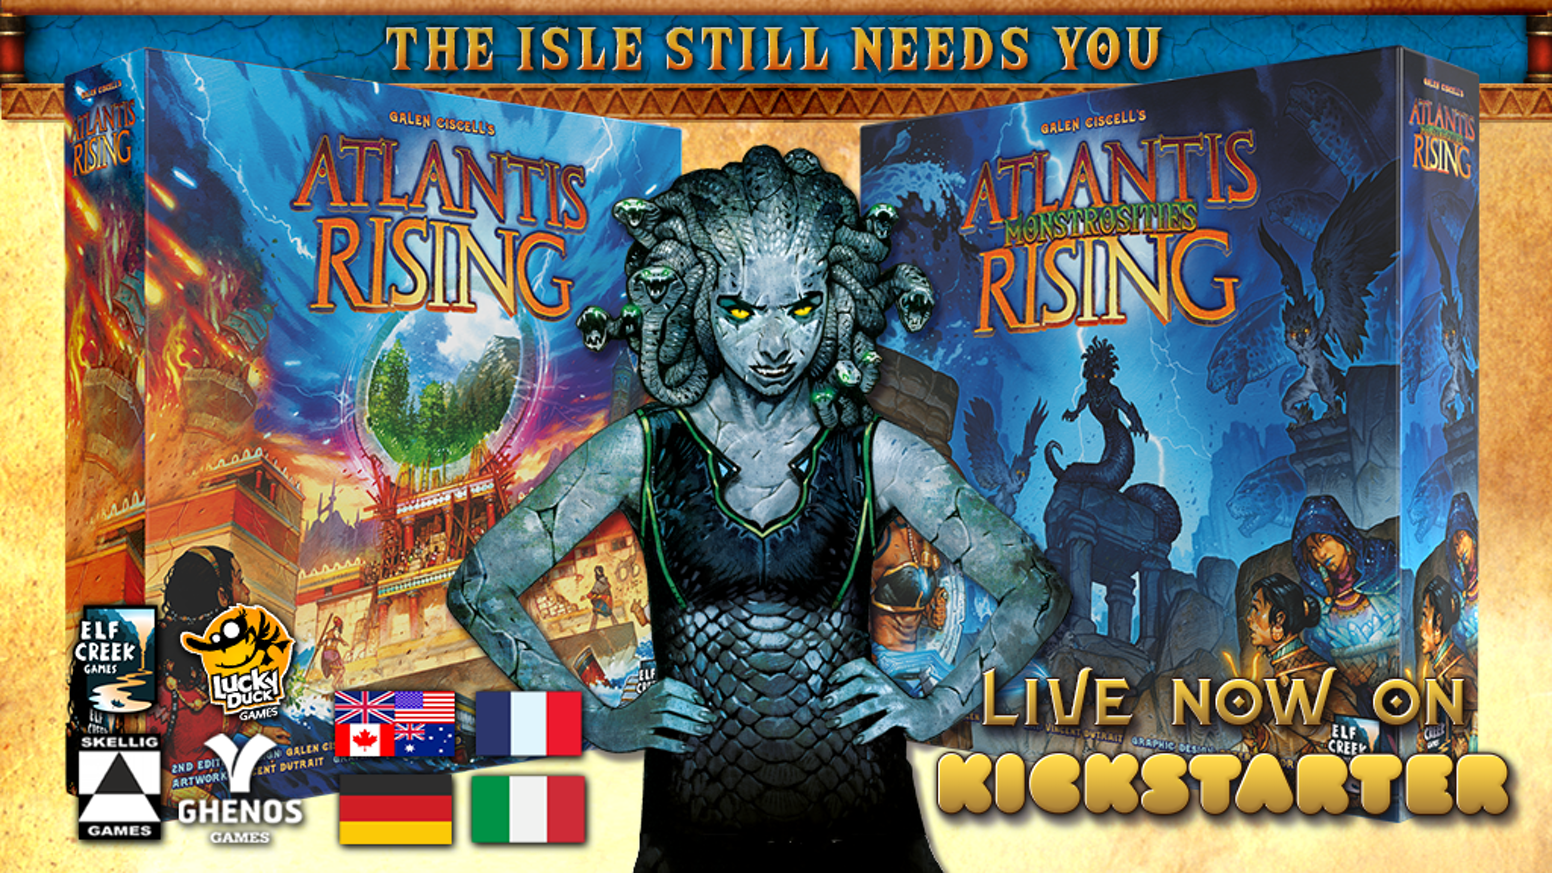 An all new big box expansion for the acclaimed cooperative game, Atlantis Rising, with editions in English, French, German, and Italian